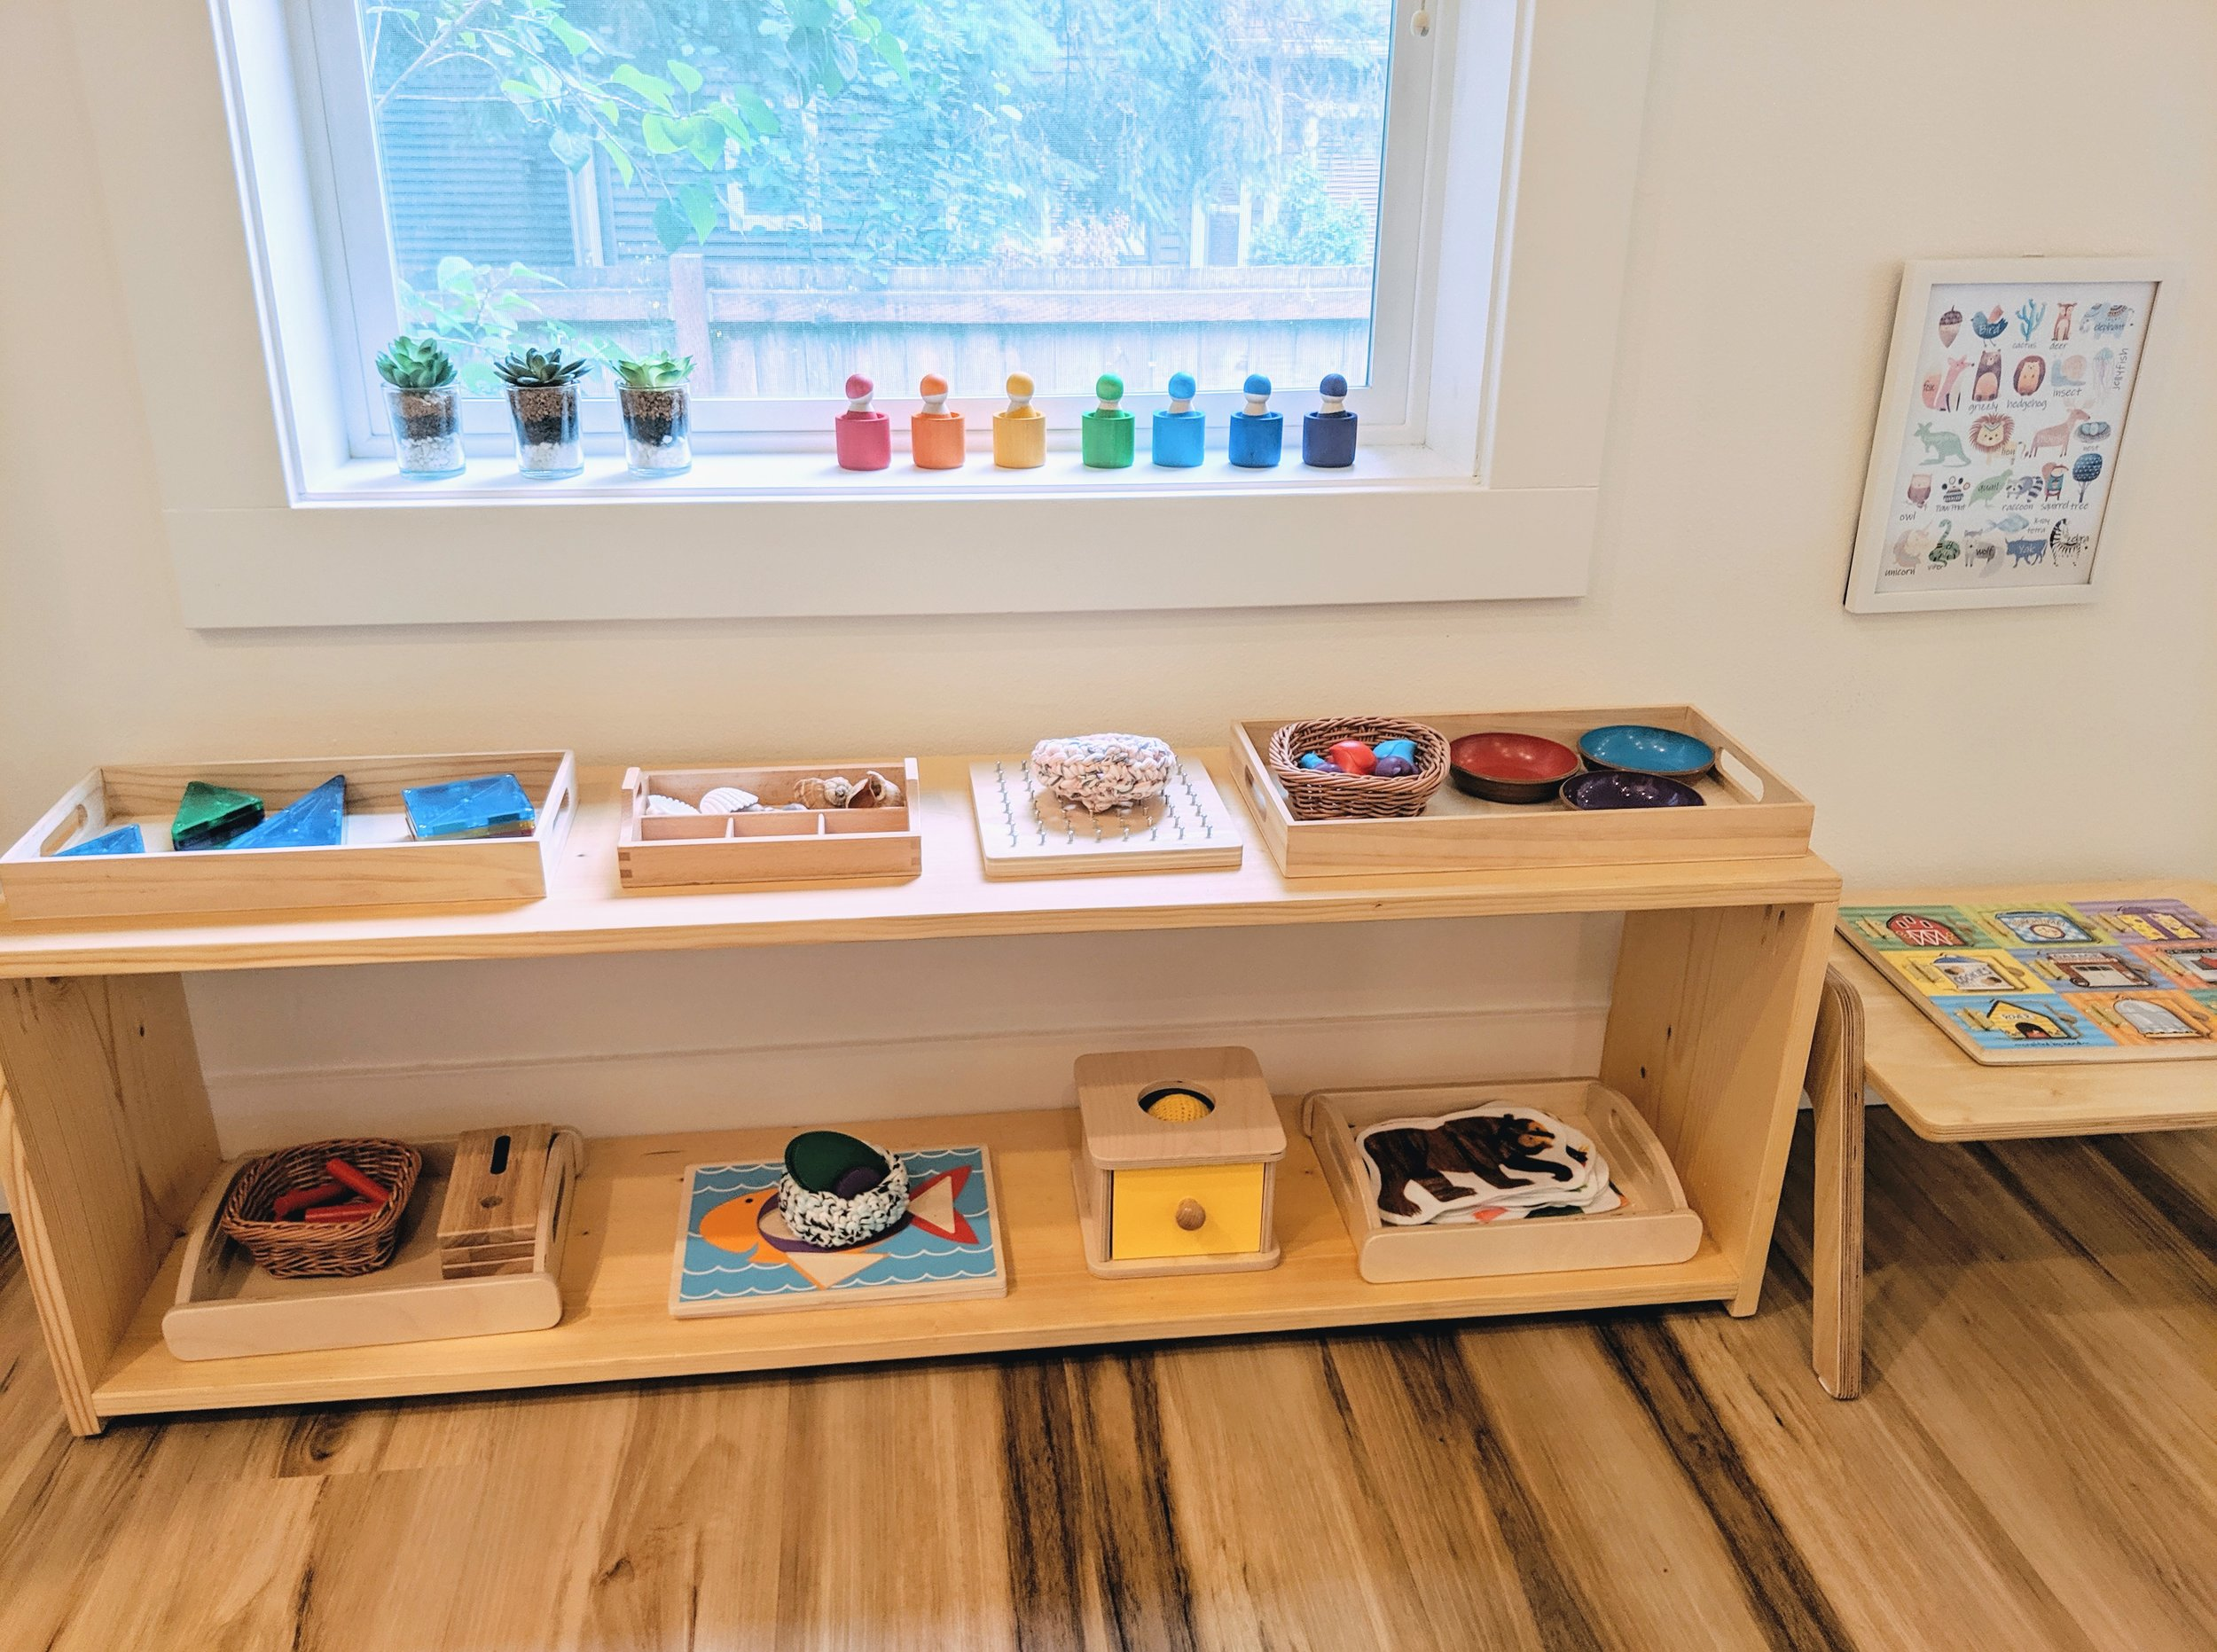 Our Montessori Shelf at 24 Months - Montessori in Real Life